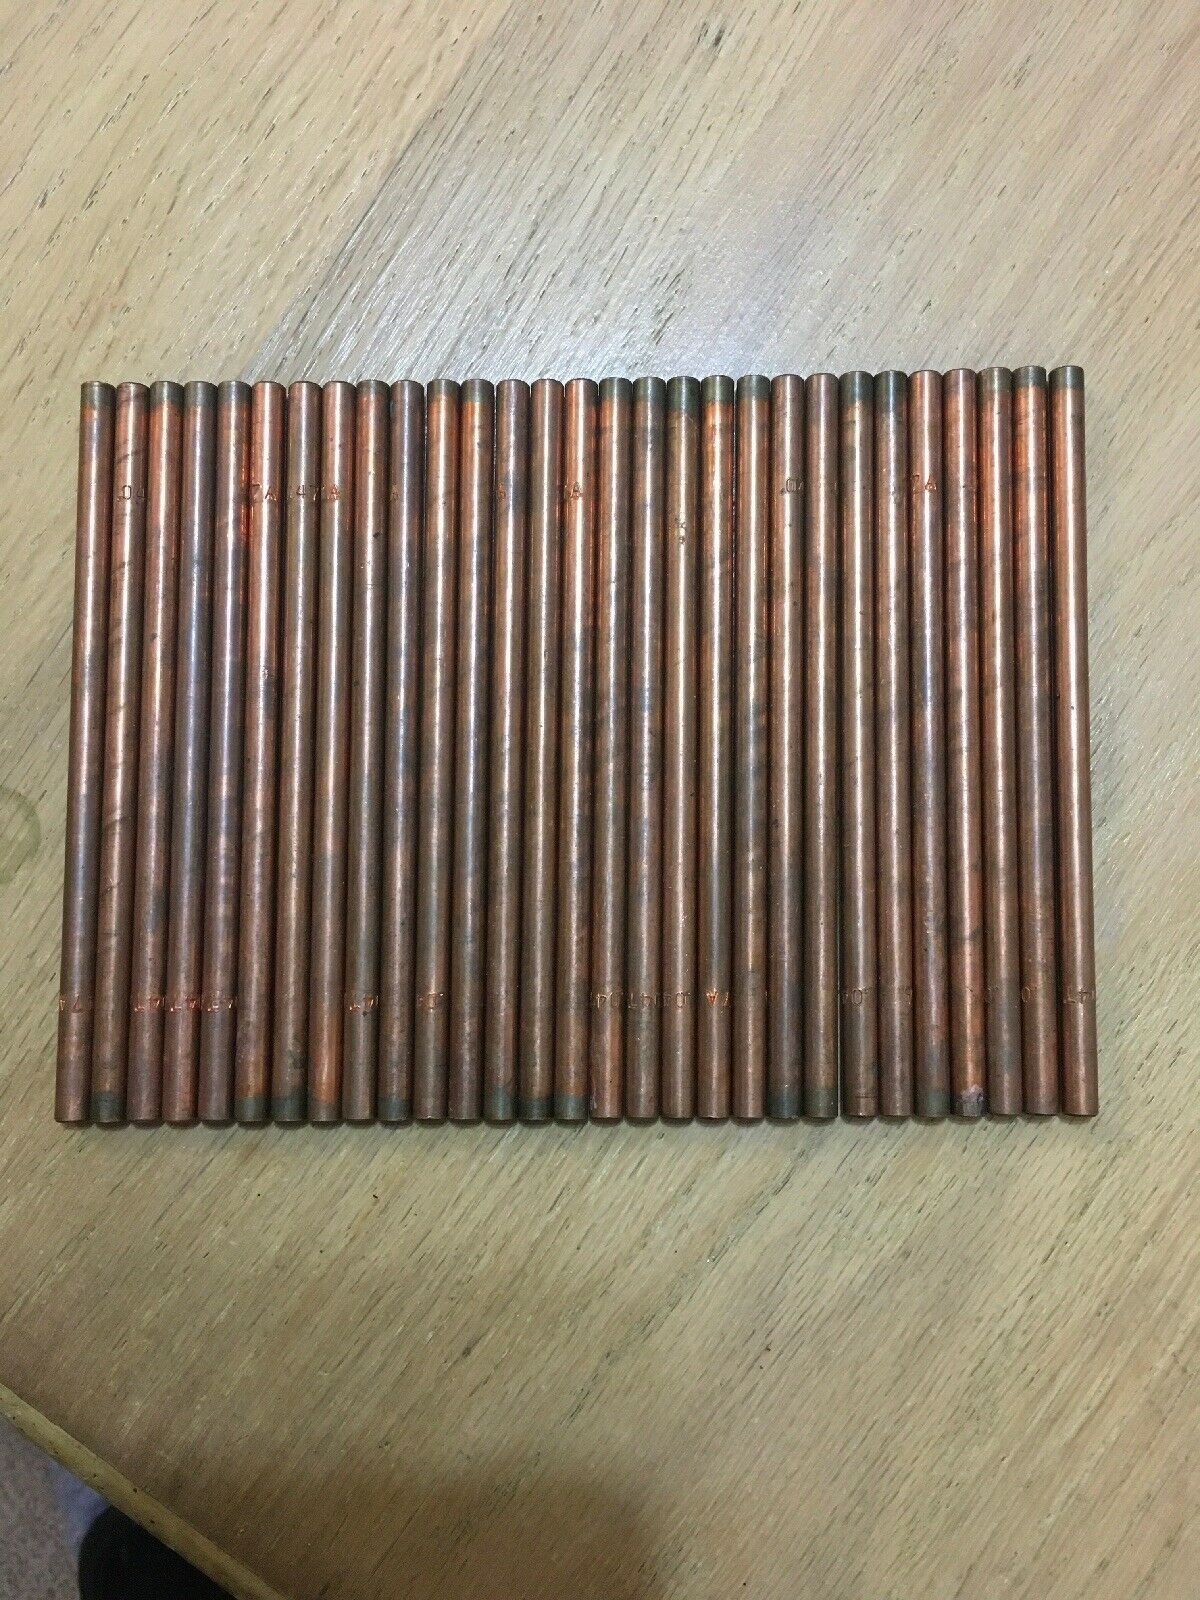 5 pack Miller 094260 Tip Contact Sl .047 Wire X 4.000